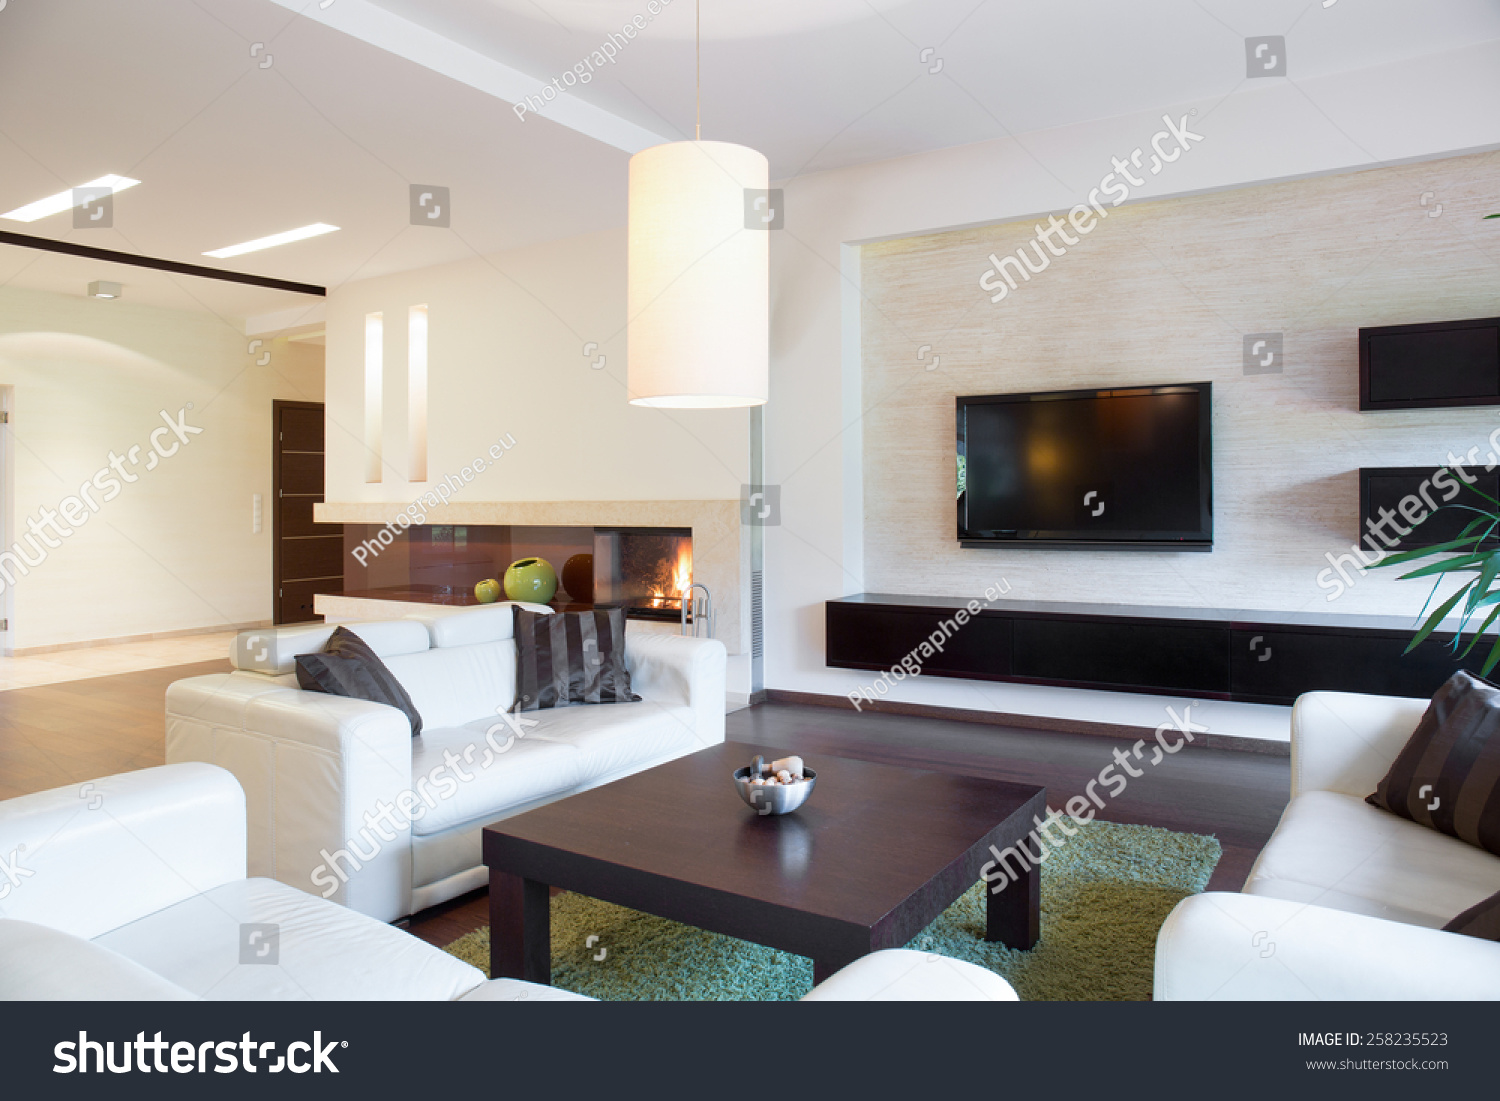 Modern Apartment Inside. View of relaxation area inside modern apartment Relaxation Area Inside  Modern Apartment Stock Photo 258235523 The Best 98 Home Decor